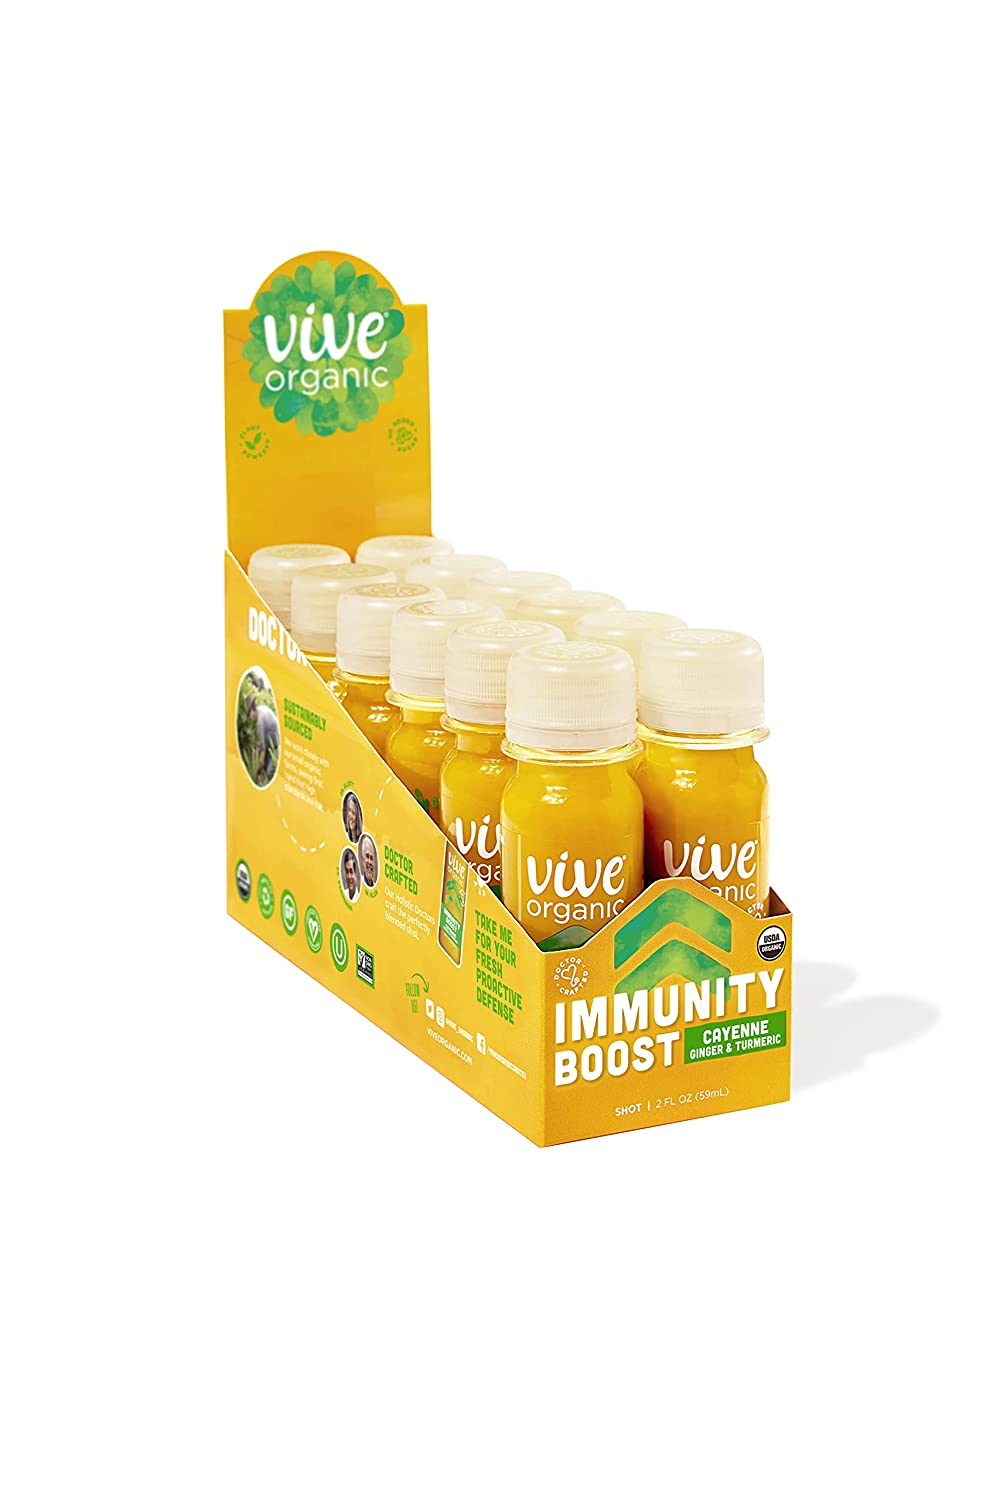 Vive Spring new work Organic Immunity Boost Cayenne 2 count Popular products oz We 12